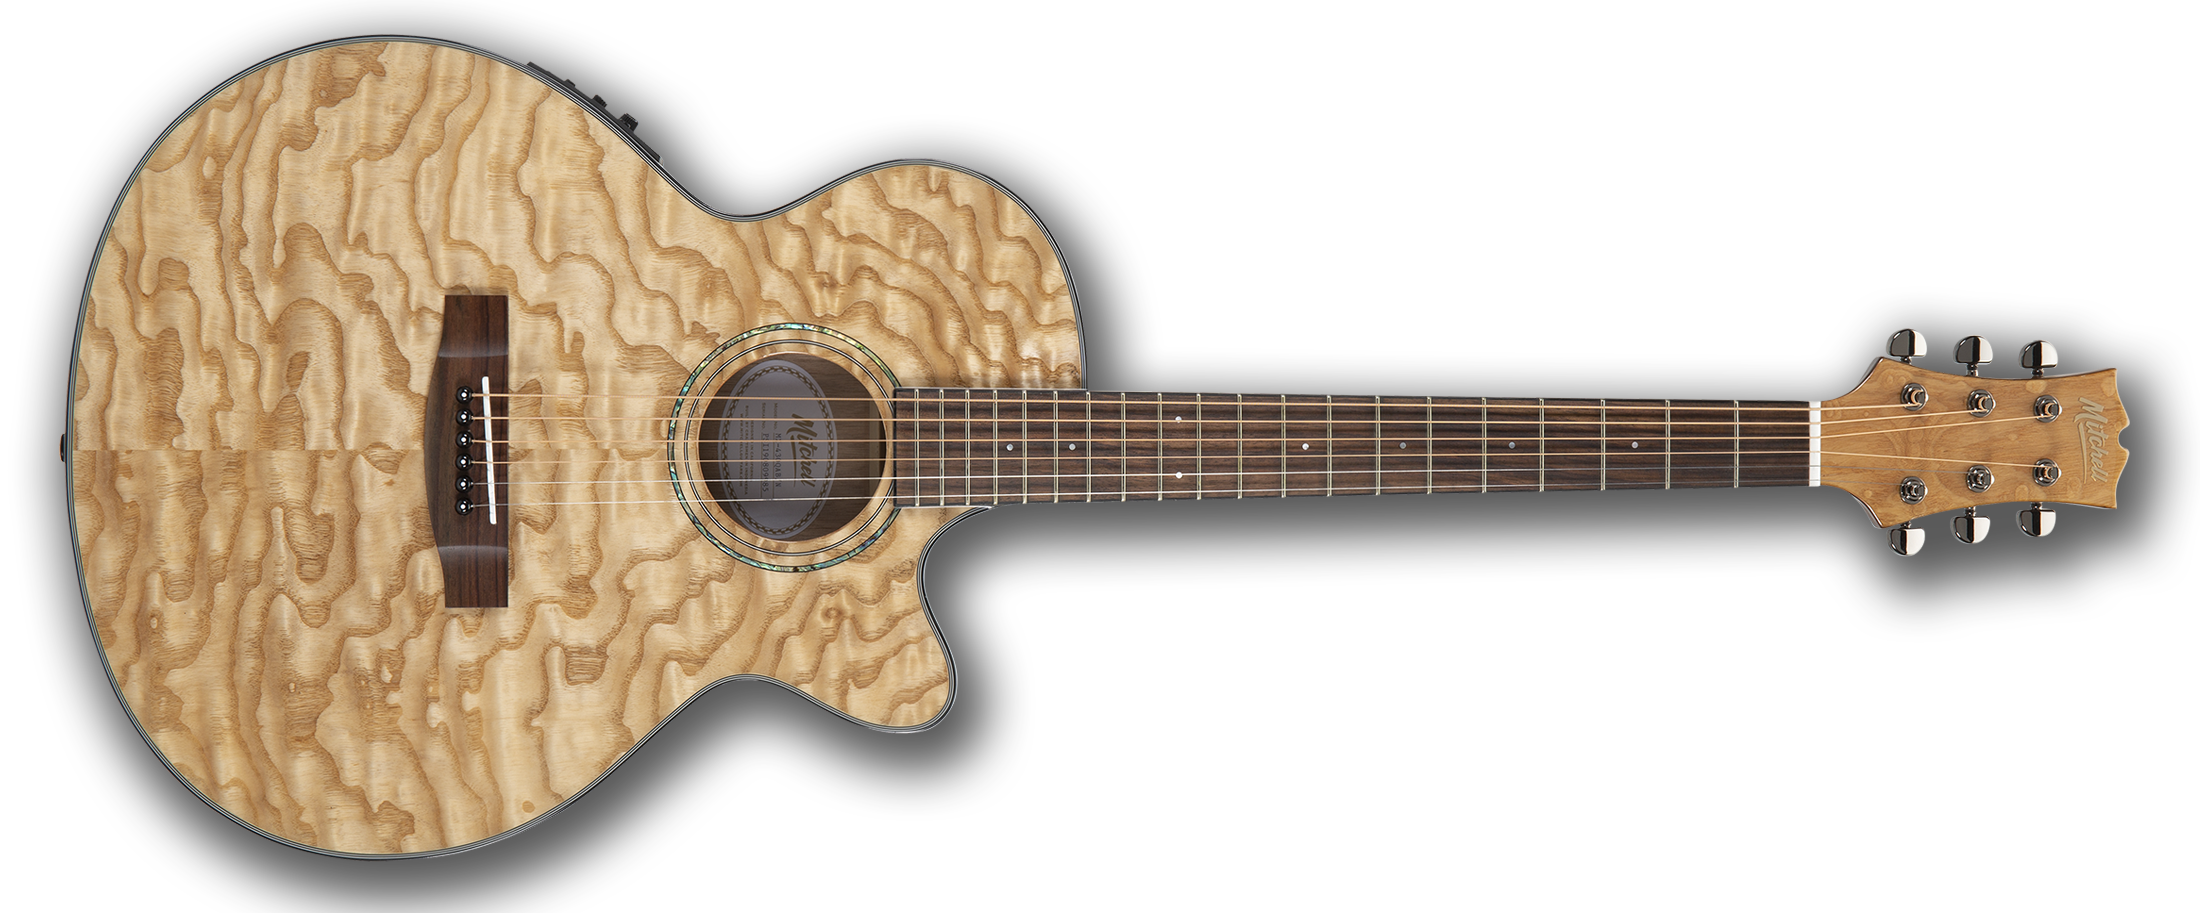 Mitchell MX430QAB Exotic Acoustic Electric Guitar Quilted Ash Burl